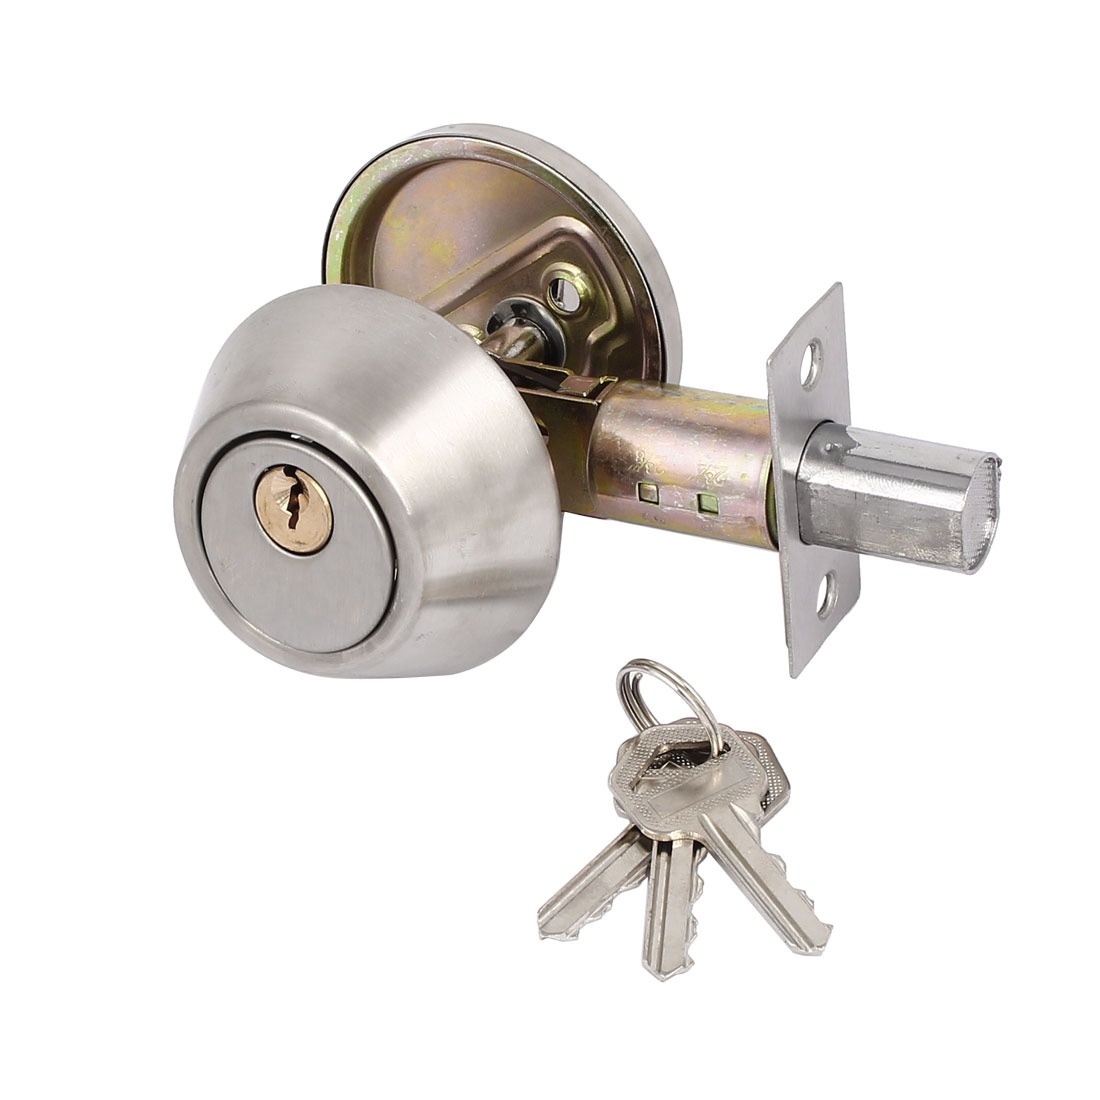 Bedroom Keyed Entry Dual Cylinder Deadbolt Lock Locker for 35mm-45mm Thick Door